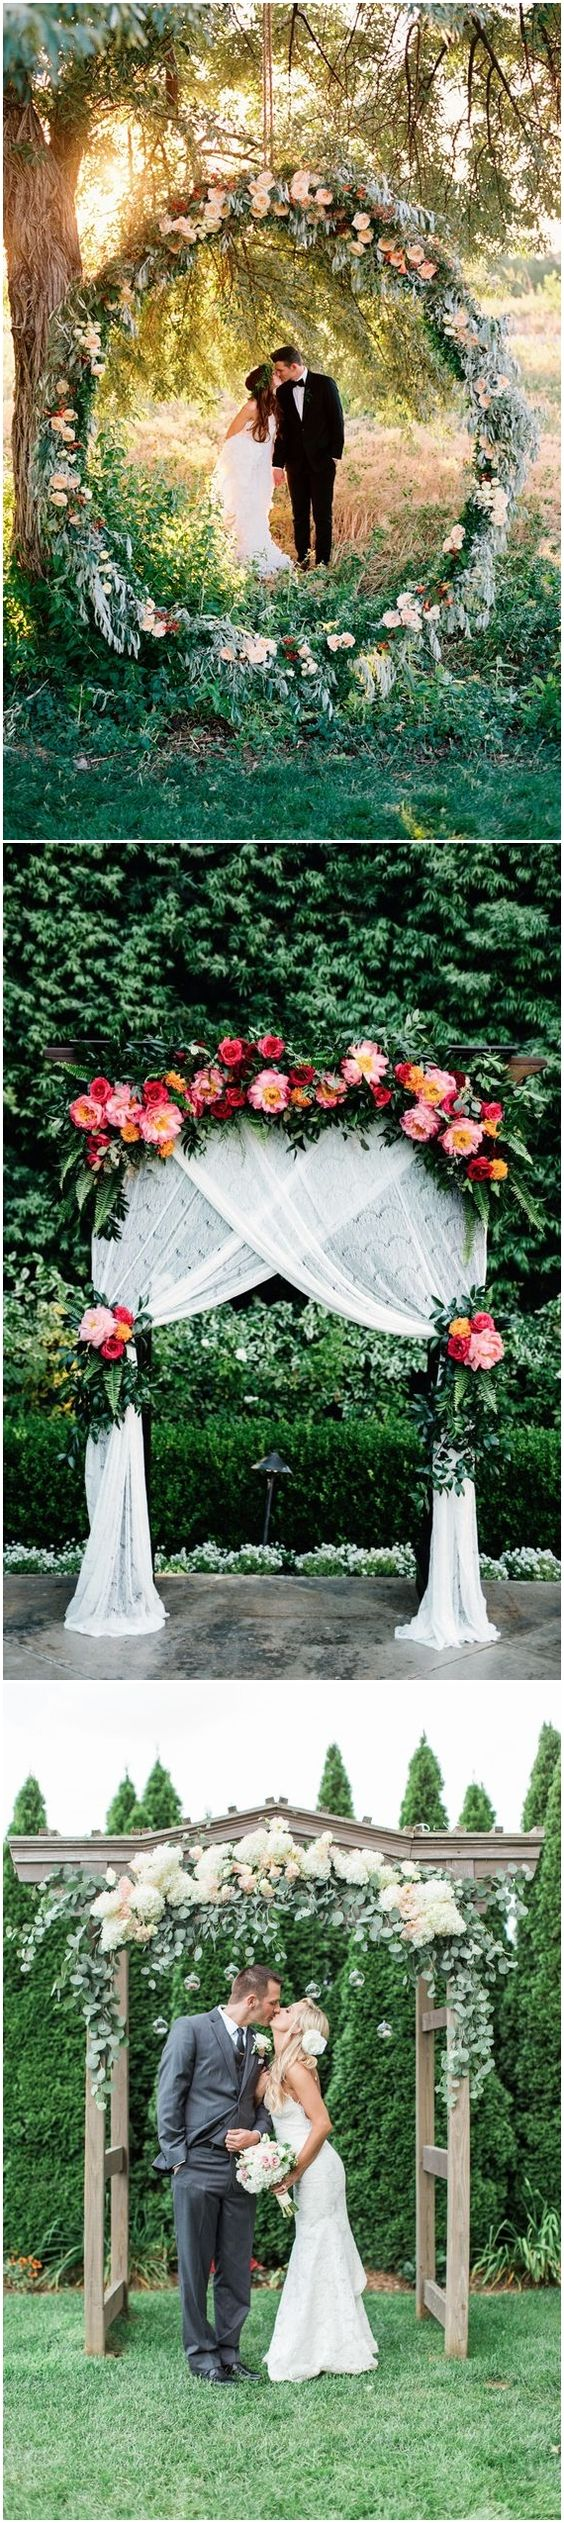 Floral canopies